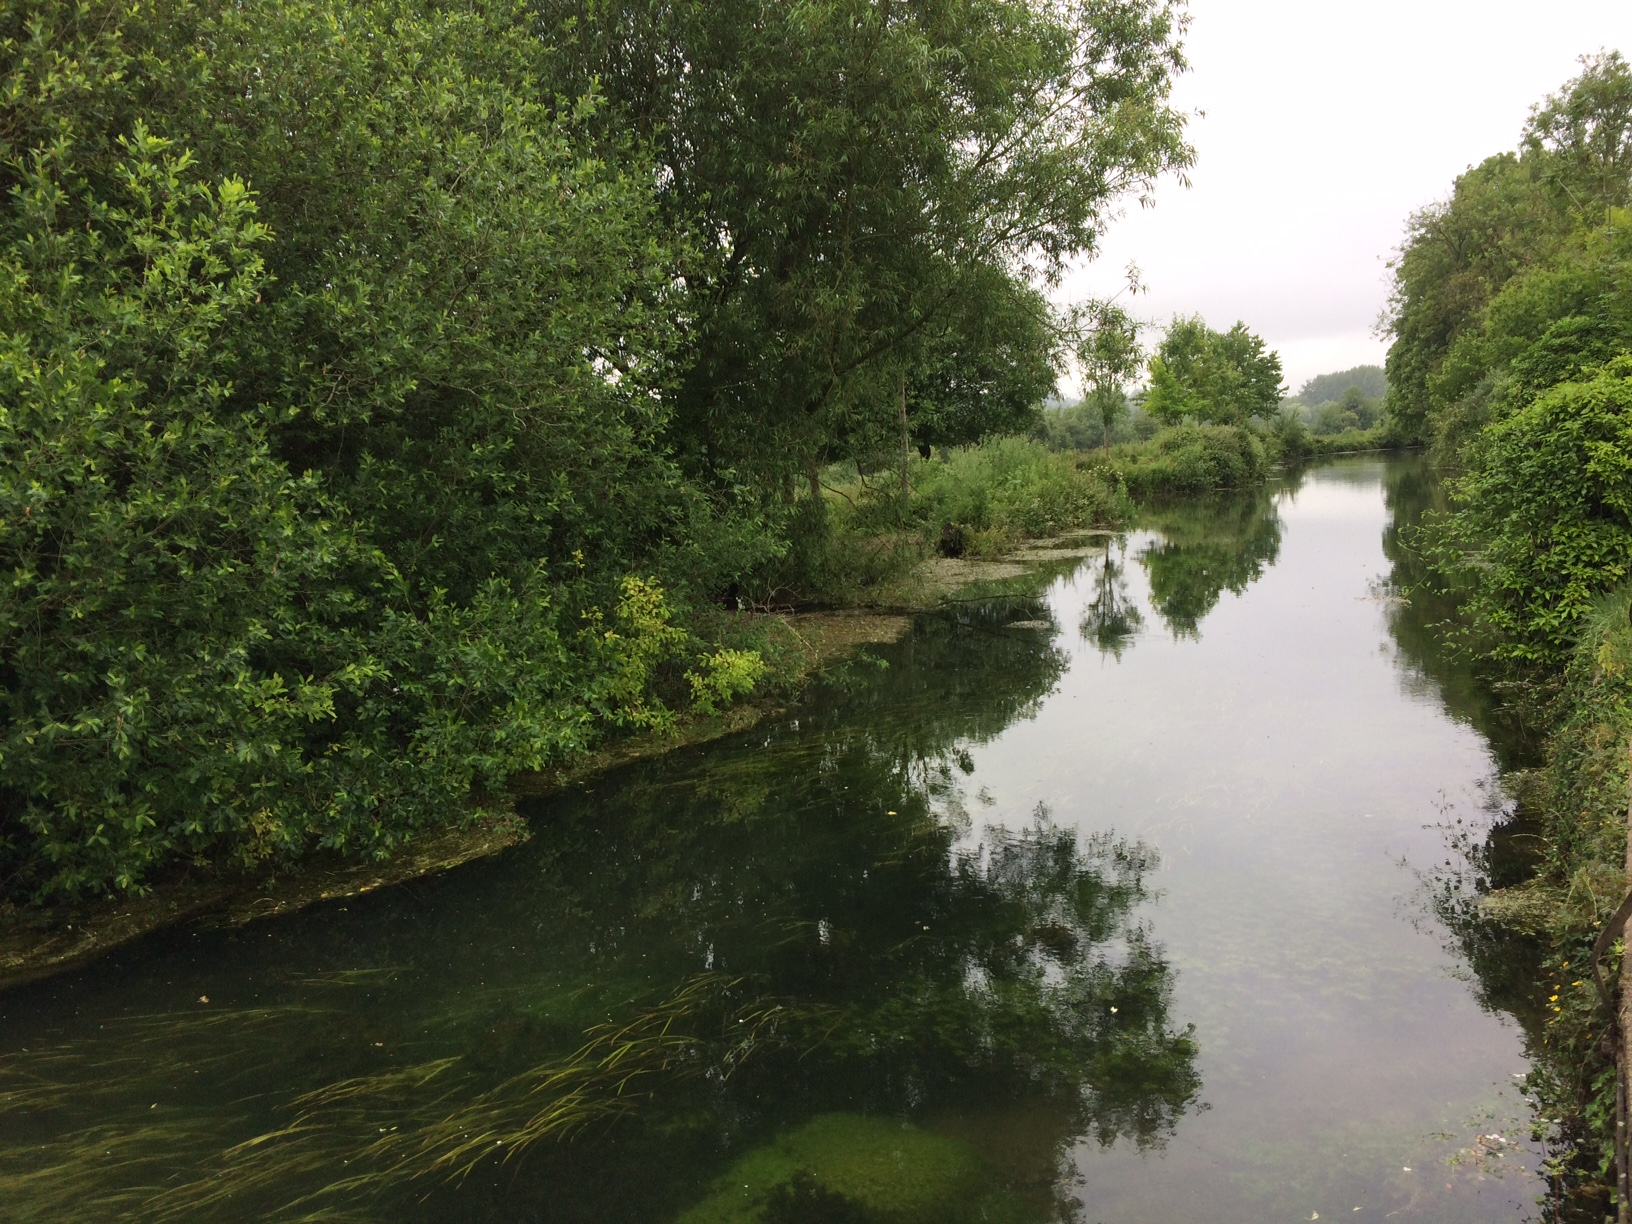 The River Itchen running through the water meadows in Winchester